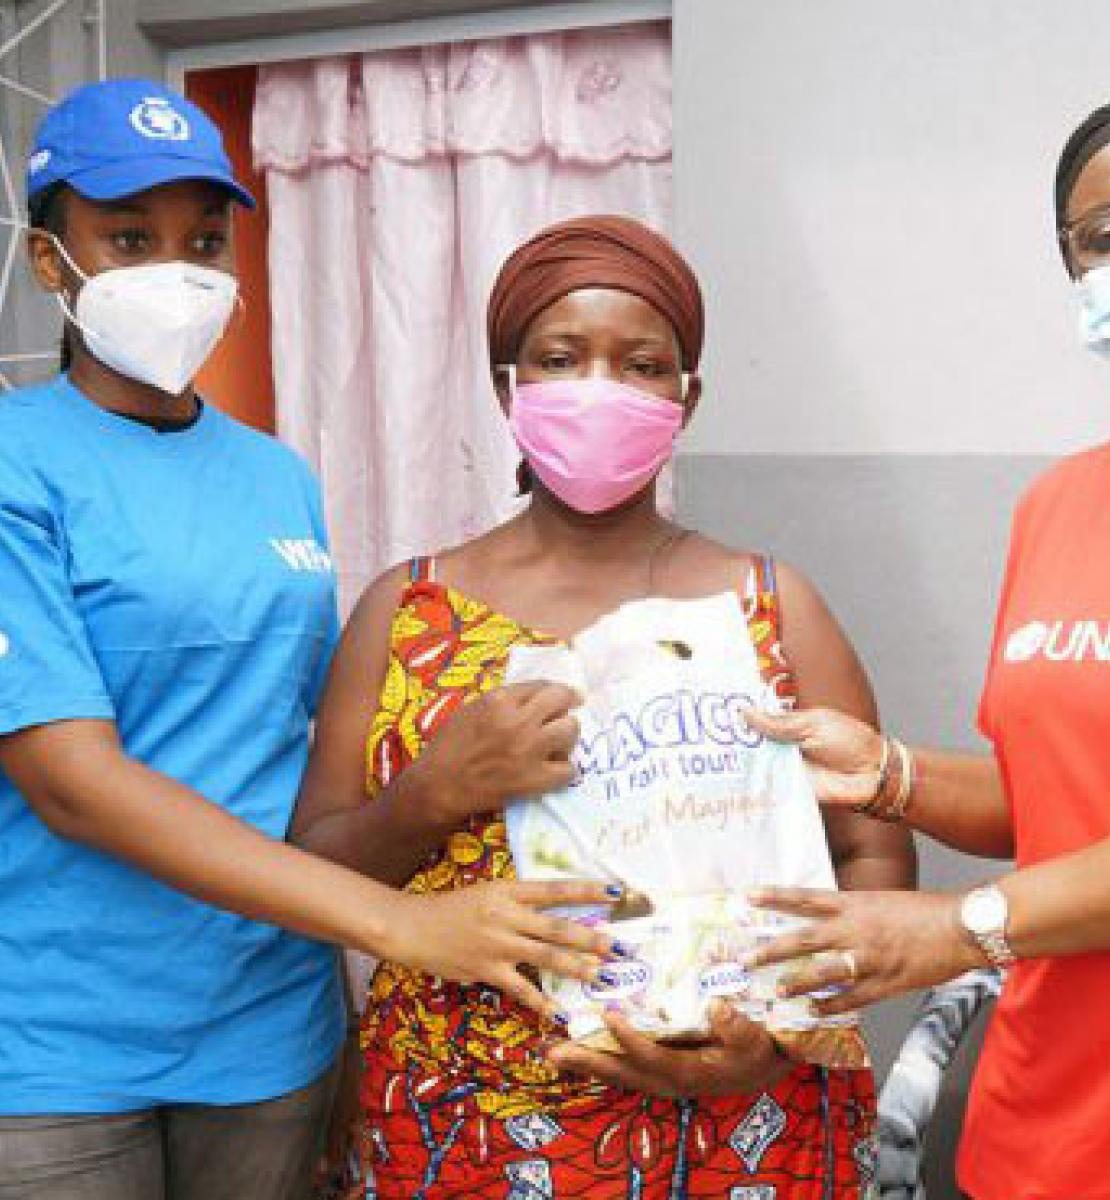 WFP and UNAIDS staff stand besides a woman holding a bag of essential supplies.